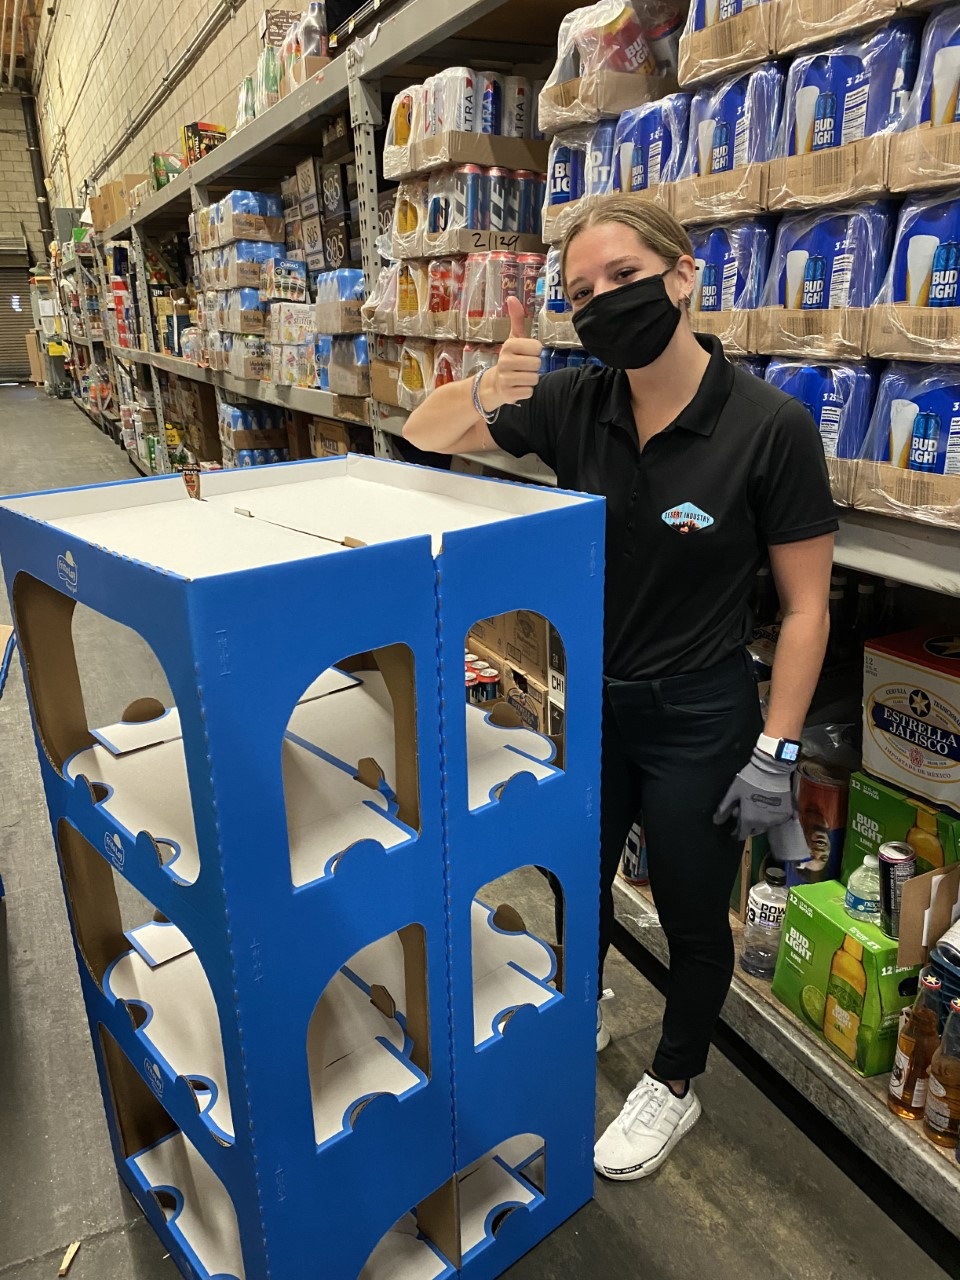 Aubrey Kuhn poses for a picture inside a Los Angeles-area grocery store during her summer internship with Frito-Lay.